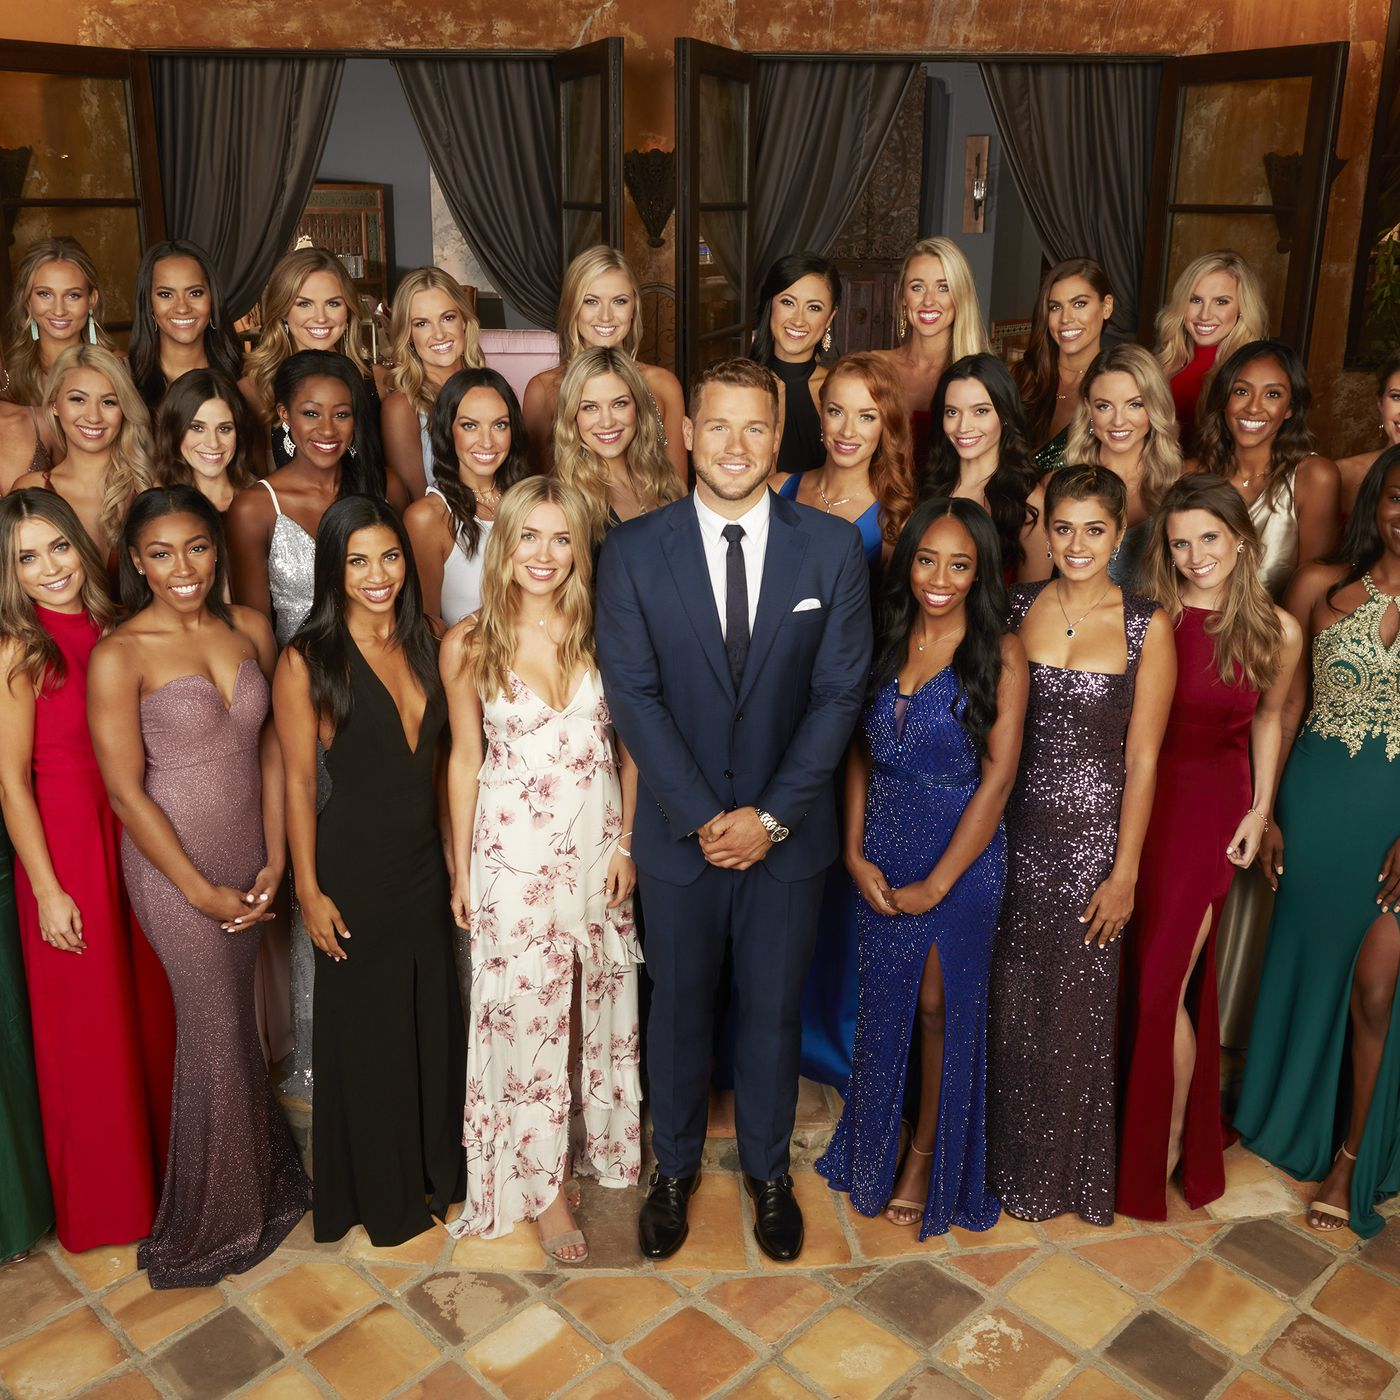 2eb37983907b5 The Bachelor 2019  here s how contestants get their clothes - Vox